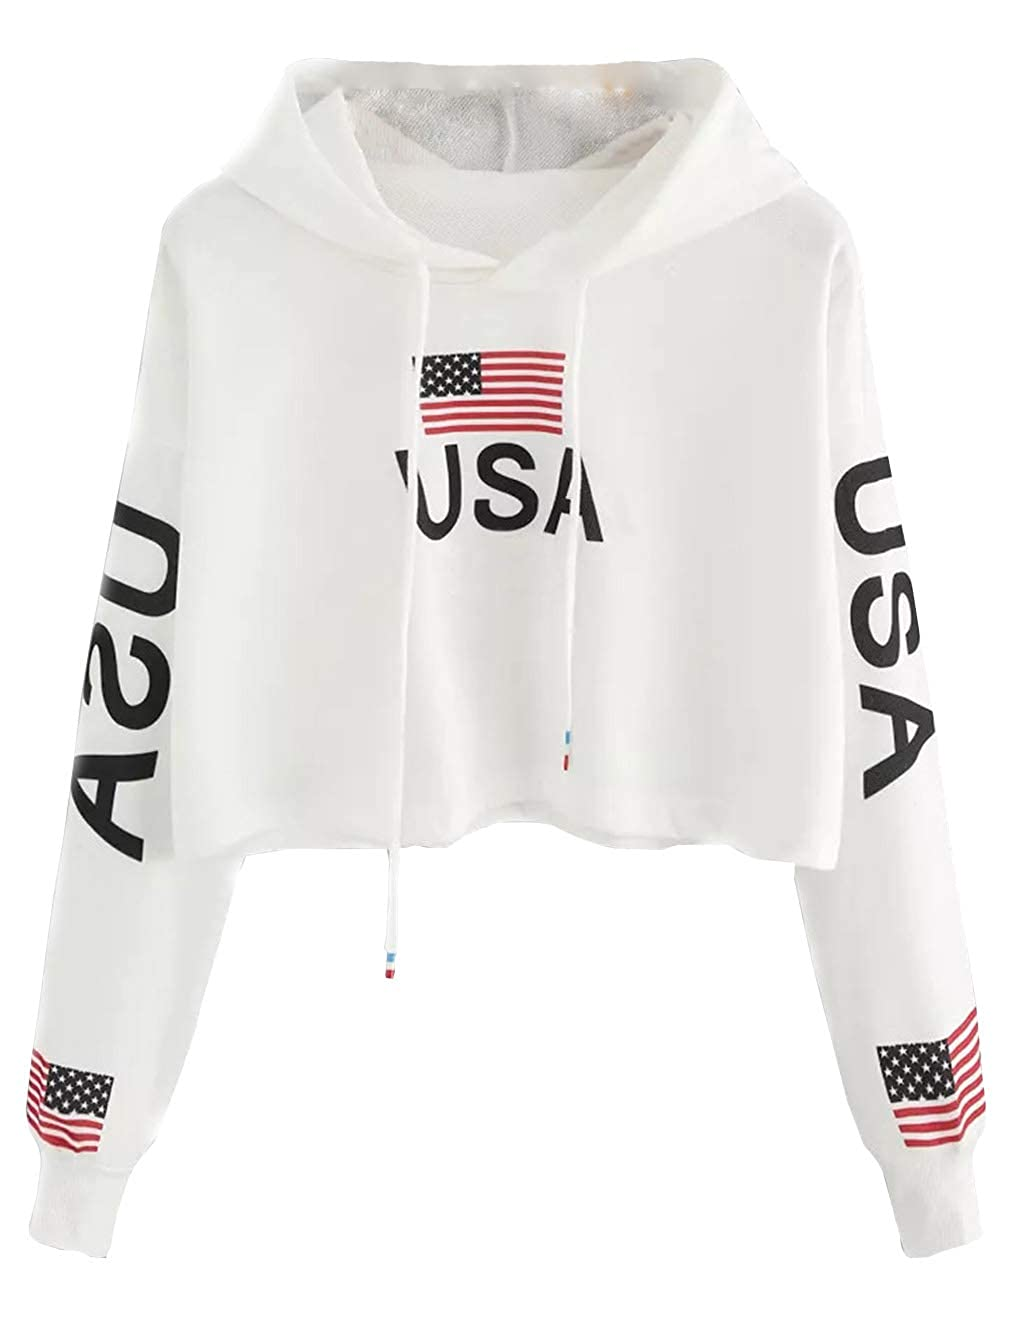 Cute Sweatshirts for Teen Girls USA American Flag Jacket Crop Top Cropped Hoodie Pullover Jumper Sweater Tops Clearance Sale